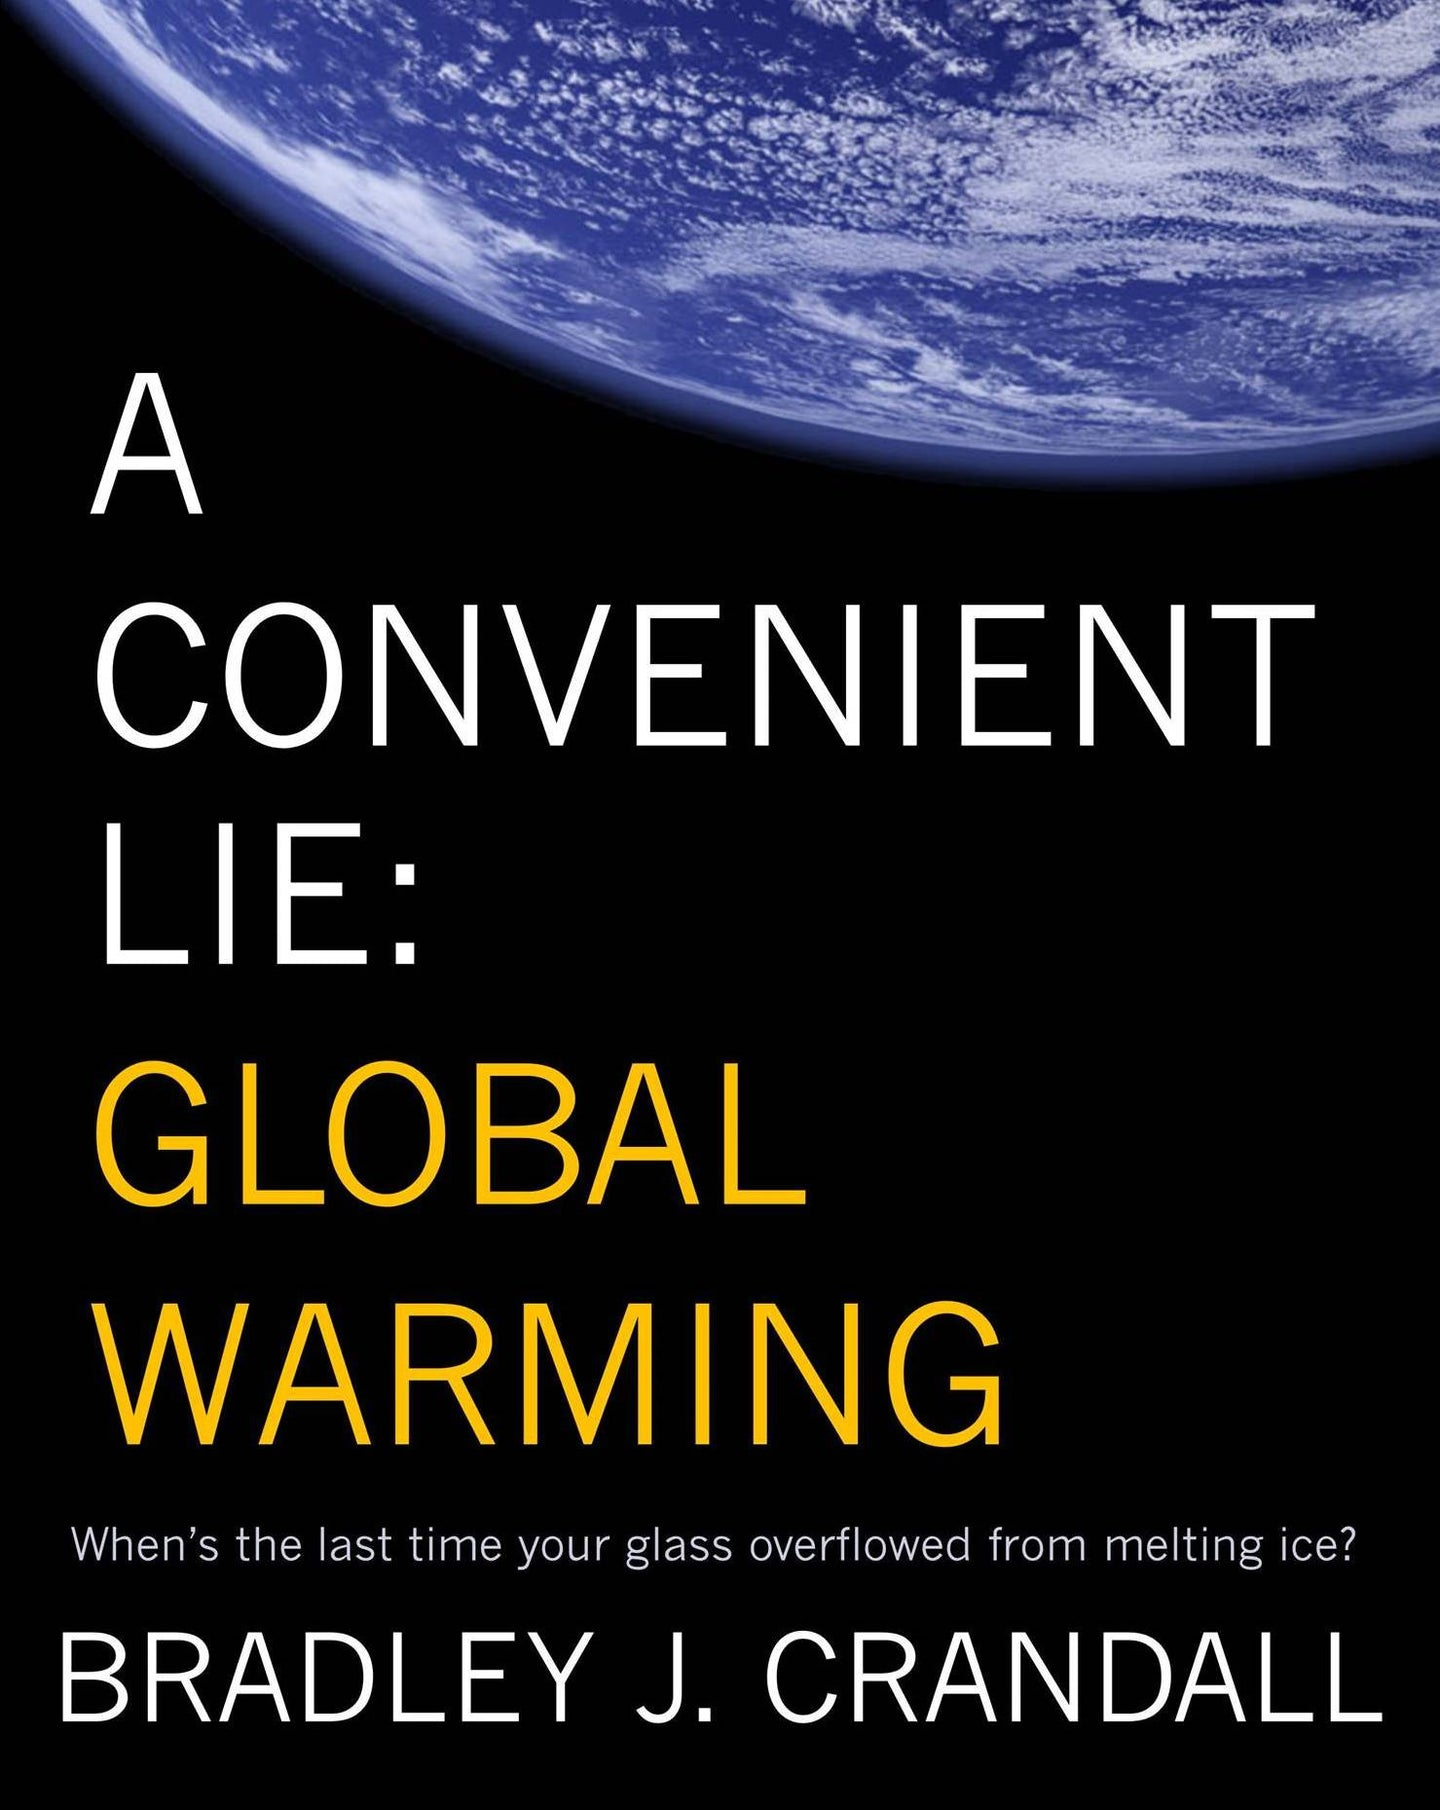 A Convenient Lie: Global Warming